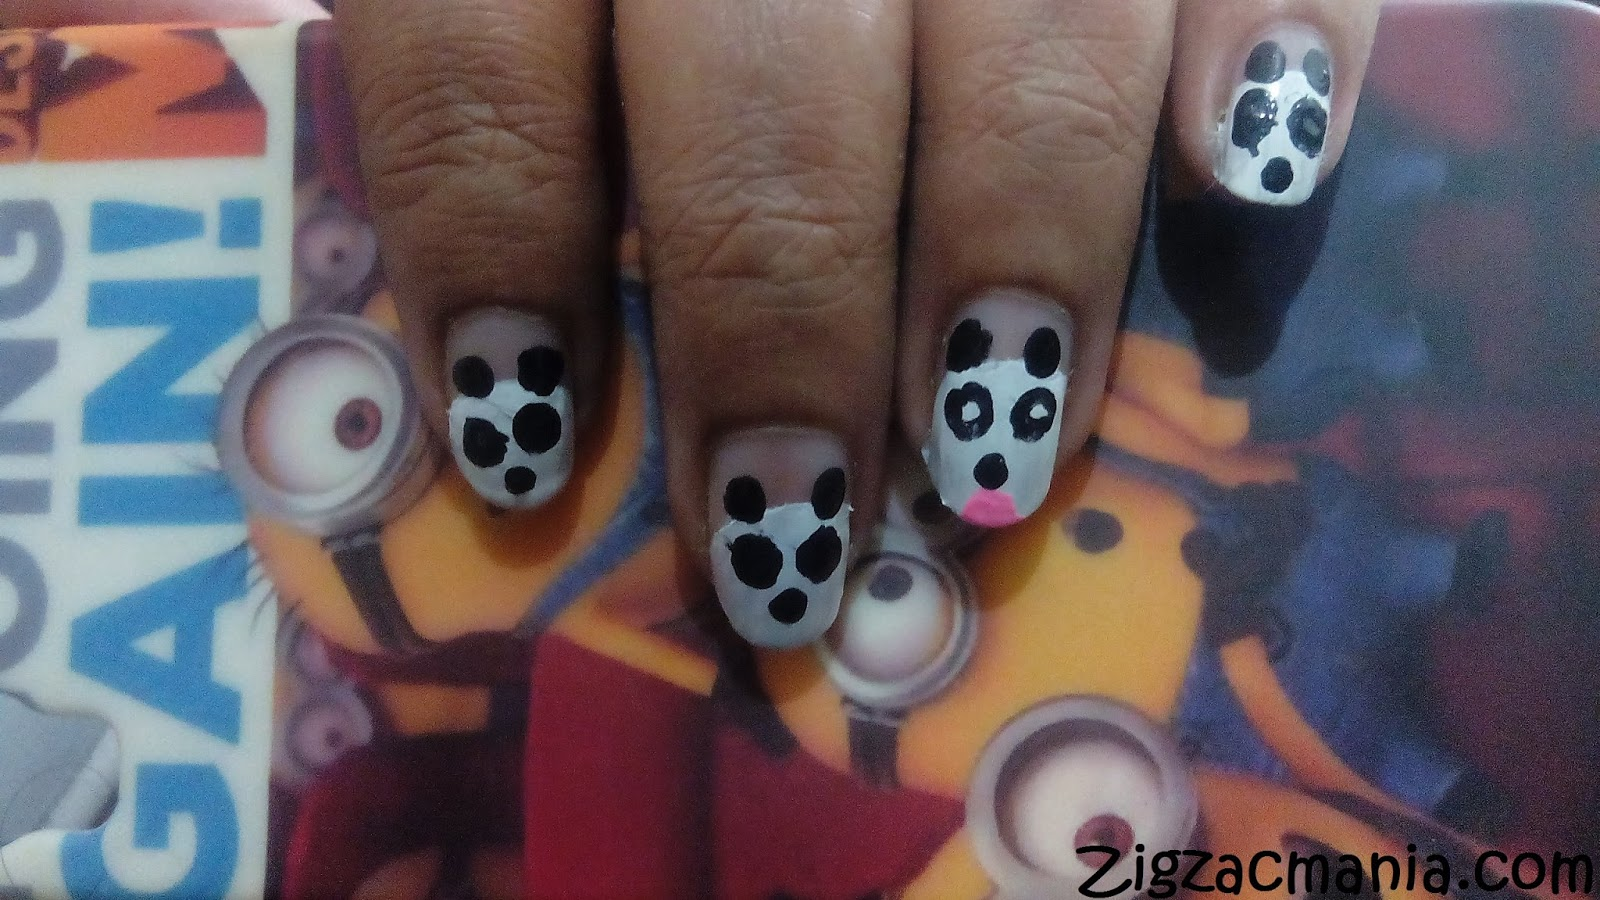 As You Know I Always Prefer To Do A Nail Art Without Tools So They Dont Look Professional One But Are Super Easy Create